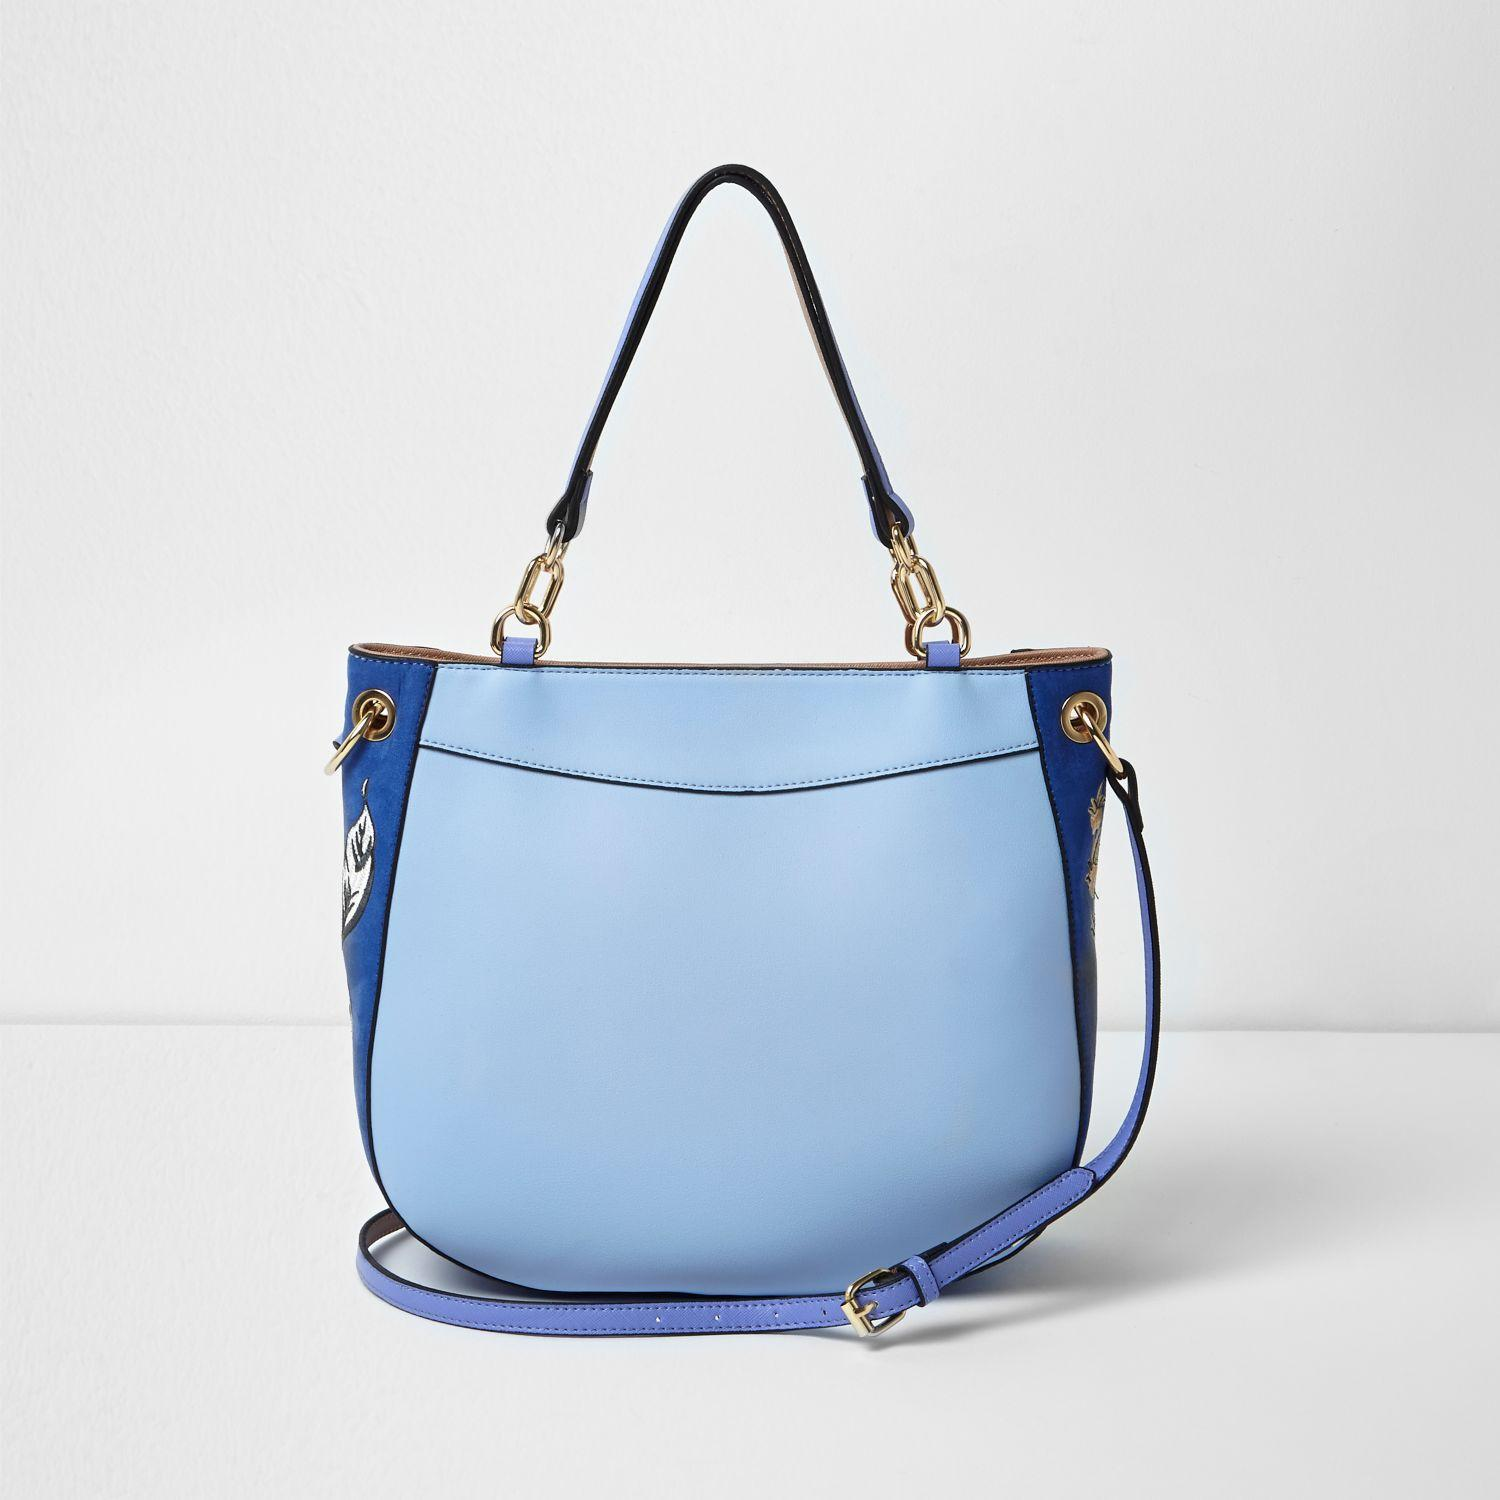 Lyst - River Island Blue Floral Embroidered Scoop Tote Bag In Blue